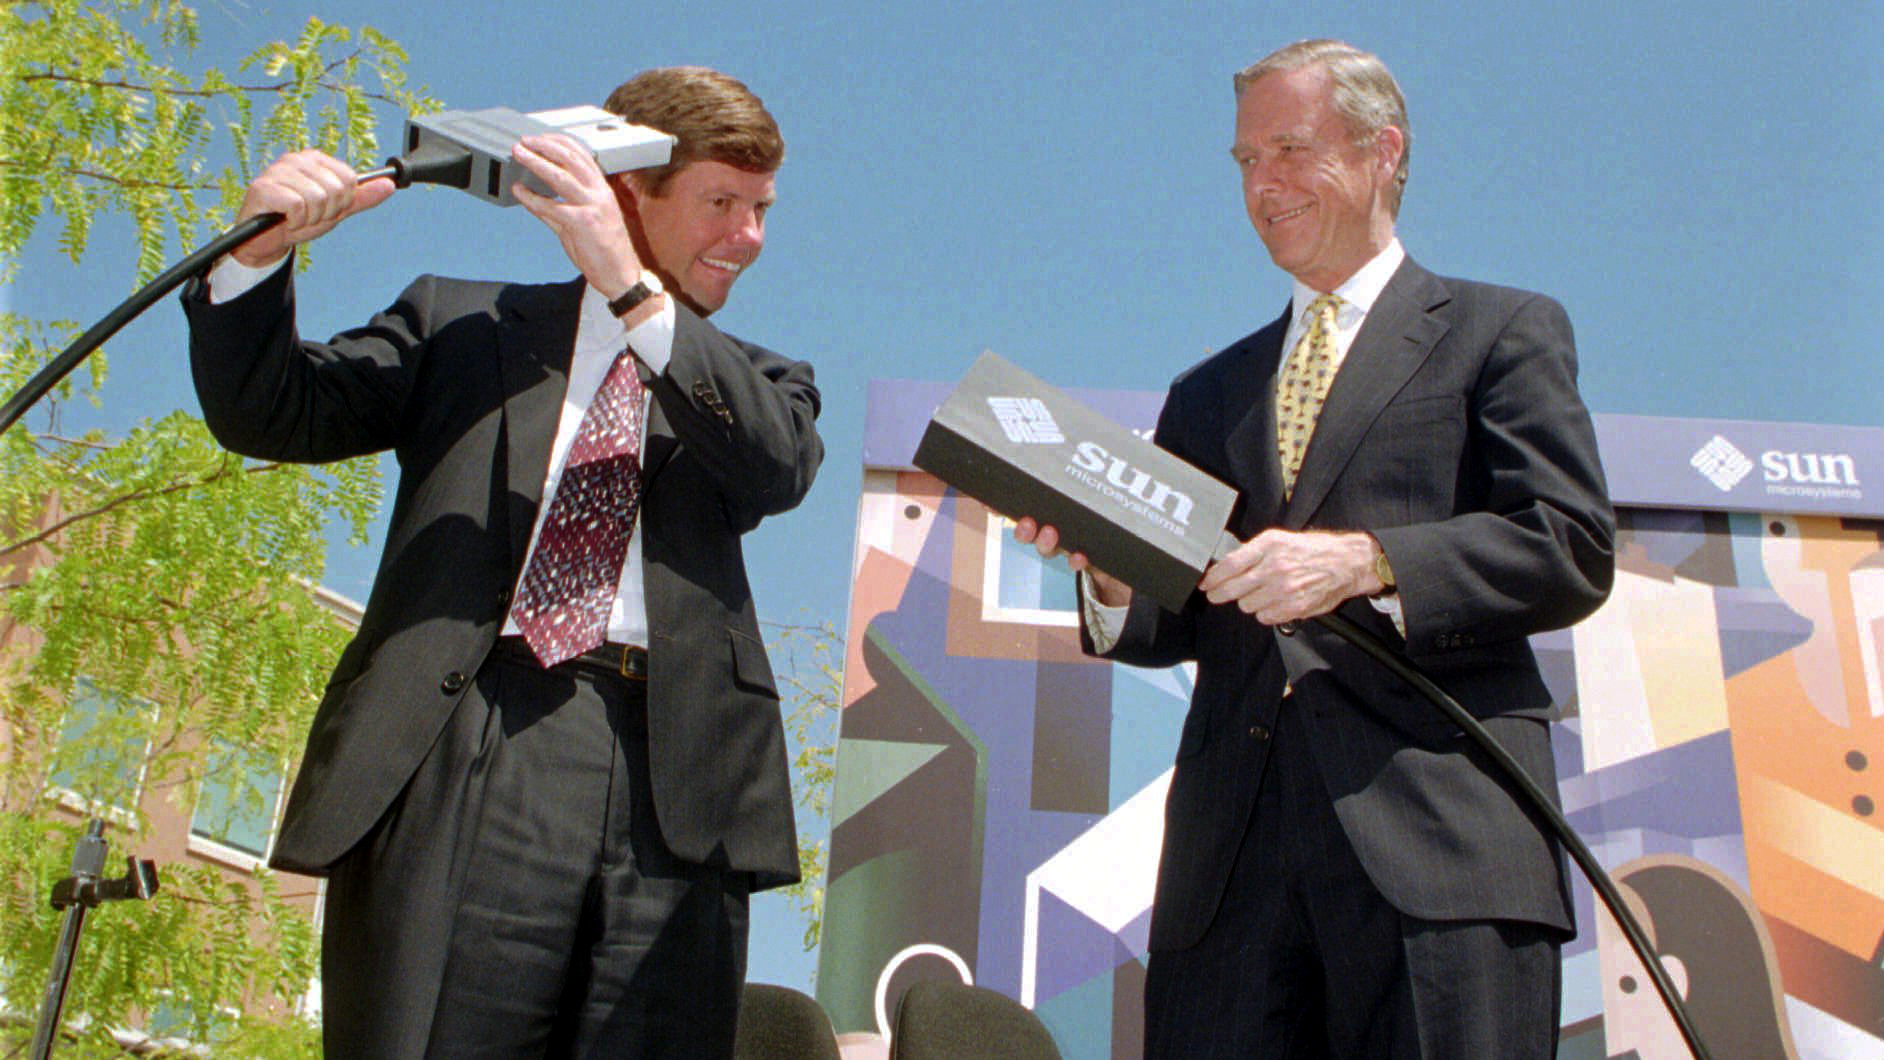 Sun Microsystems Inc. CEO Scott McNealy, left, jokes around with a fiber optic cable connection, during a news conference with Calif. Gov. Pete Wilson, right, at Sun Microsystem's Menlo Park, Calif. facility, Wednesday, Aug. 24, 1994. It has been reported that Sun Microsystems Inc. is preparing a bid for the financially struggling Apple Computers Inc. Sun's main focus is workstations and internet servers and an acquisition of Apple would give Sun access to the fast-growing market for desktop computers.